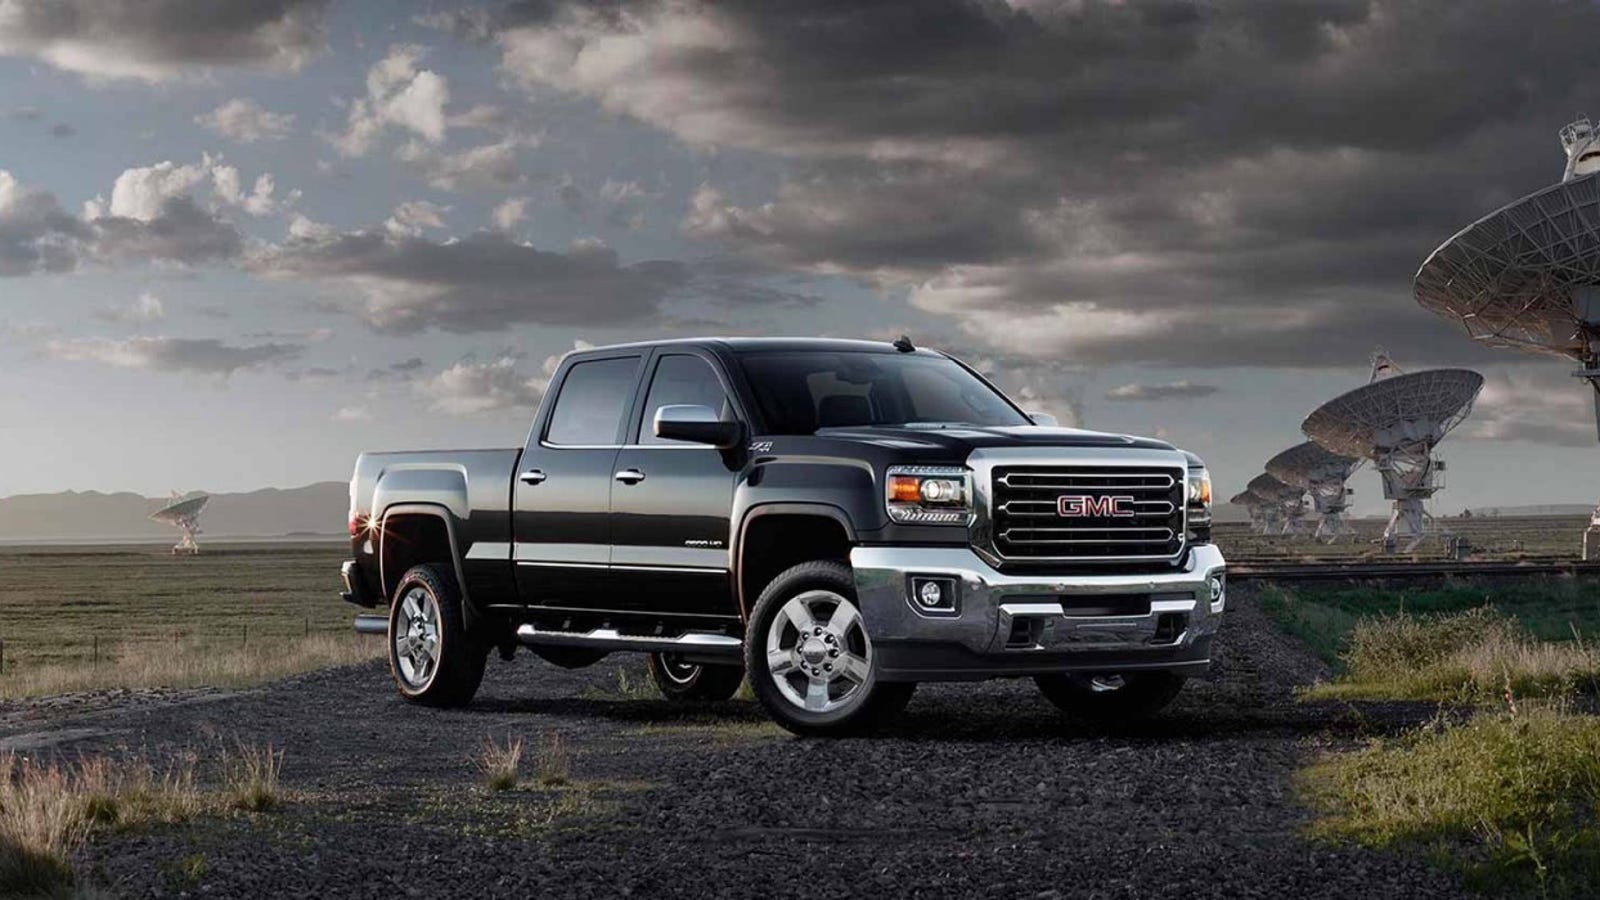 new lawsuit accuses gm of cheating diesel emissions tests on 705 000 trucks. Black Bedroom Furniture Sets. Home Design Ideas